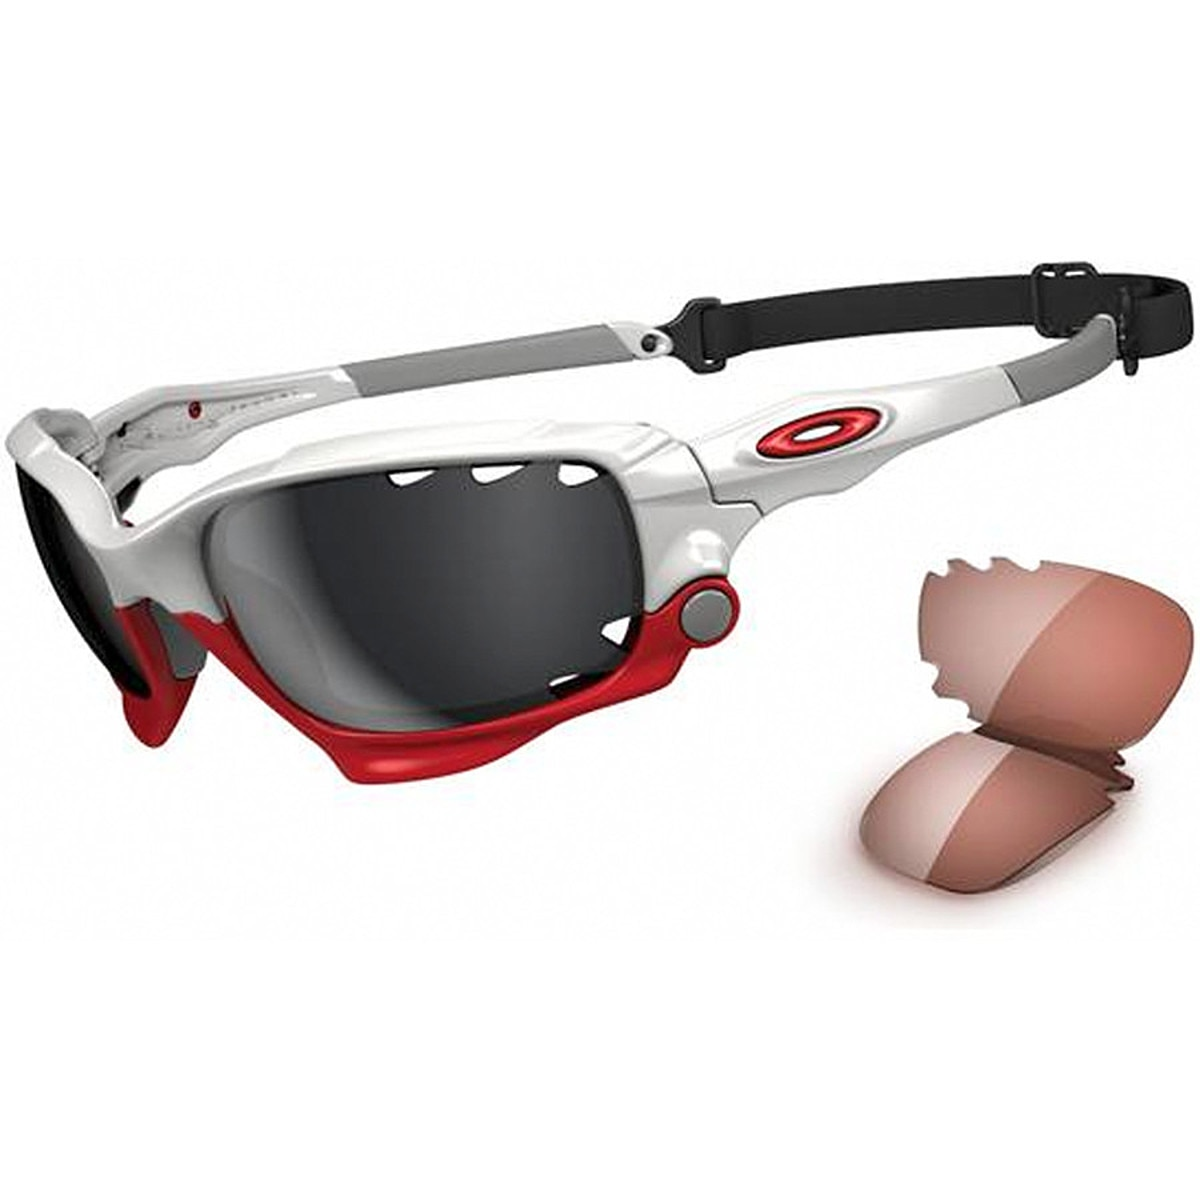 d339c3c6ac Oakley Radarlock Path Polished Whitejade Iridium Vented And Vr28 Vented